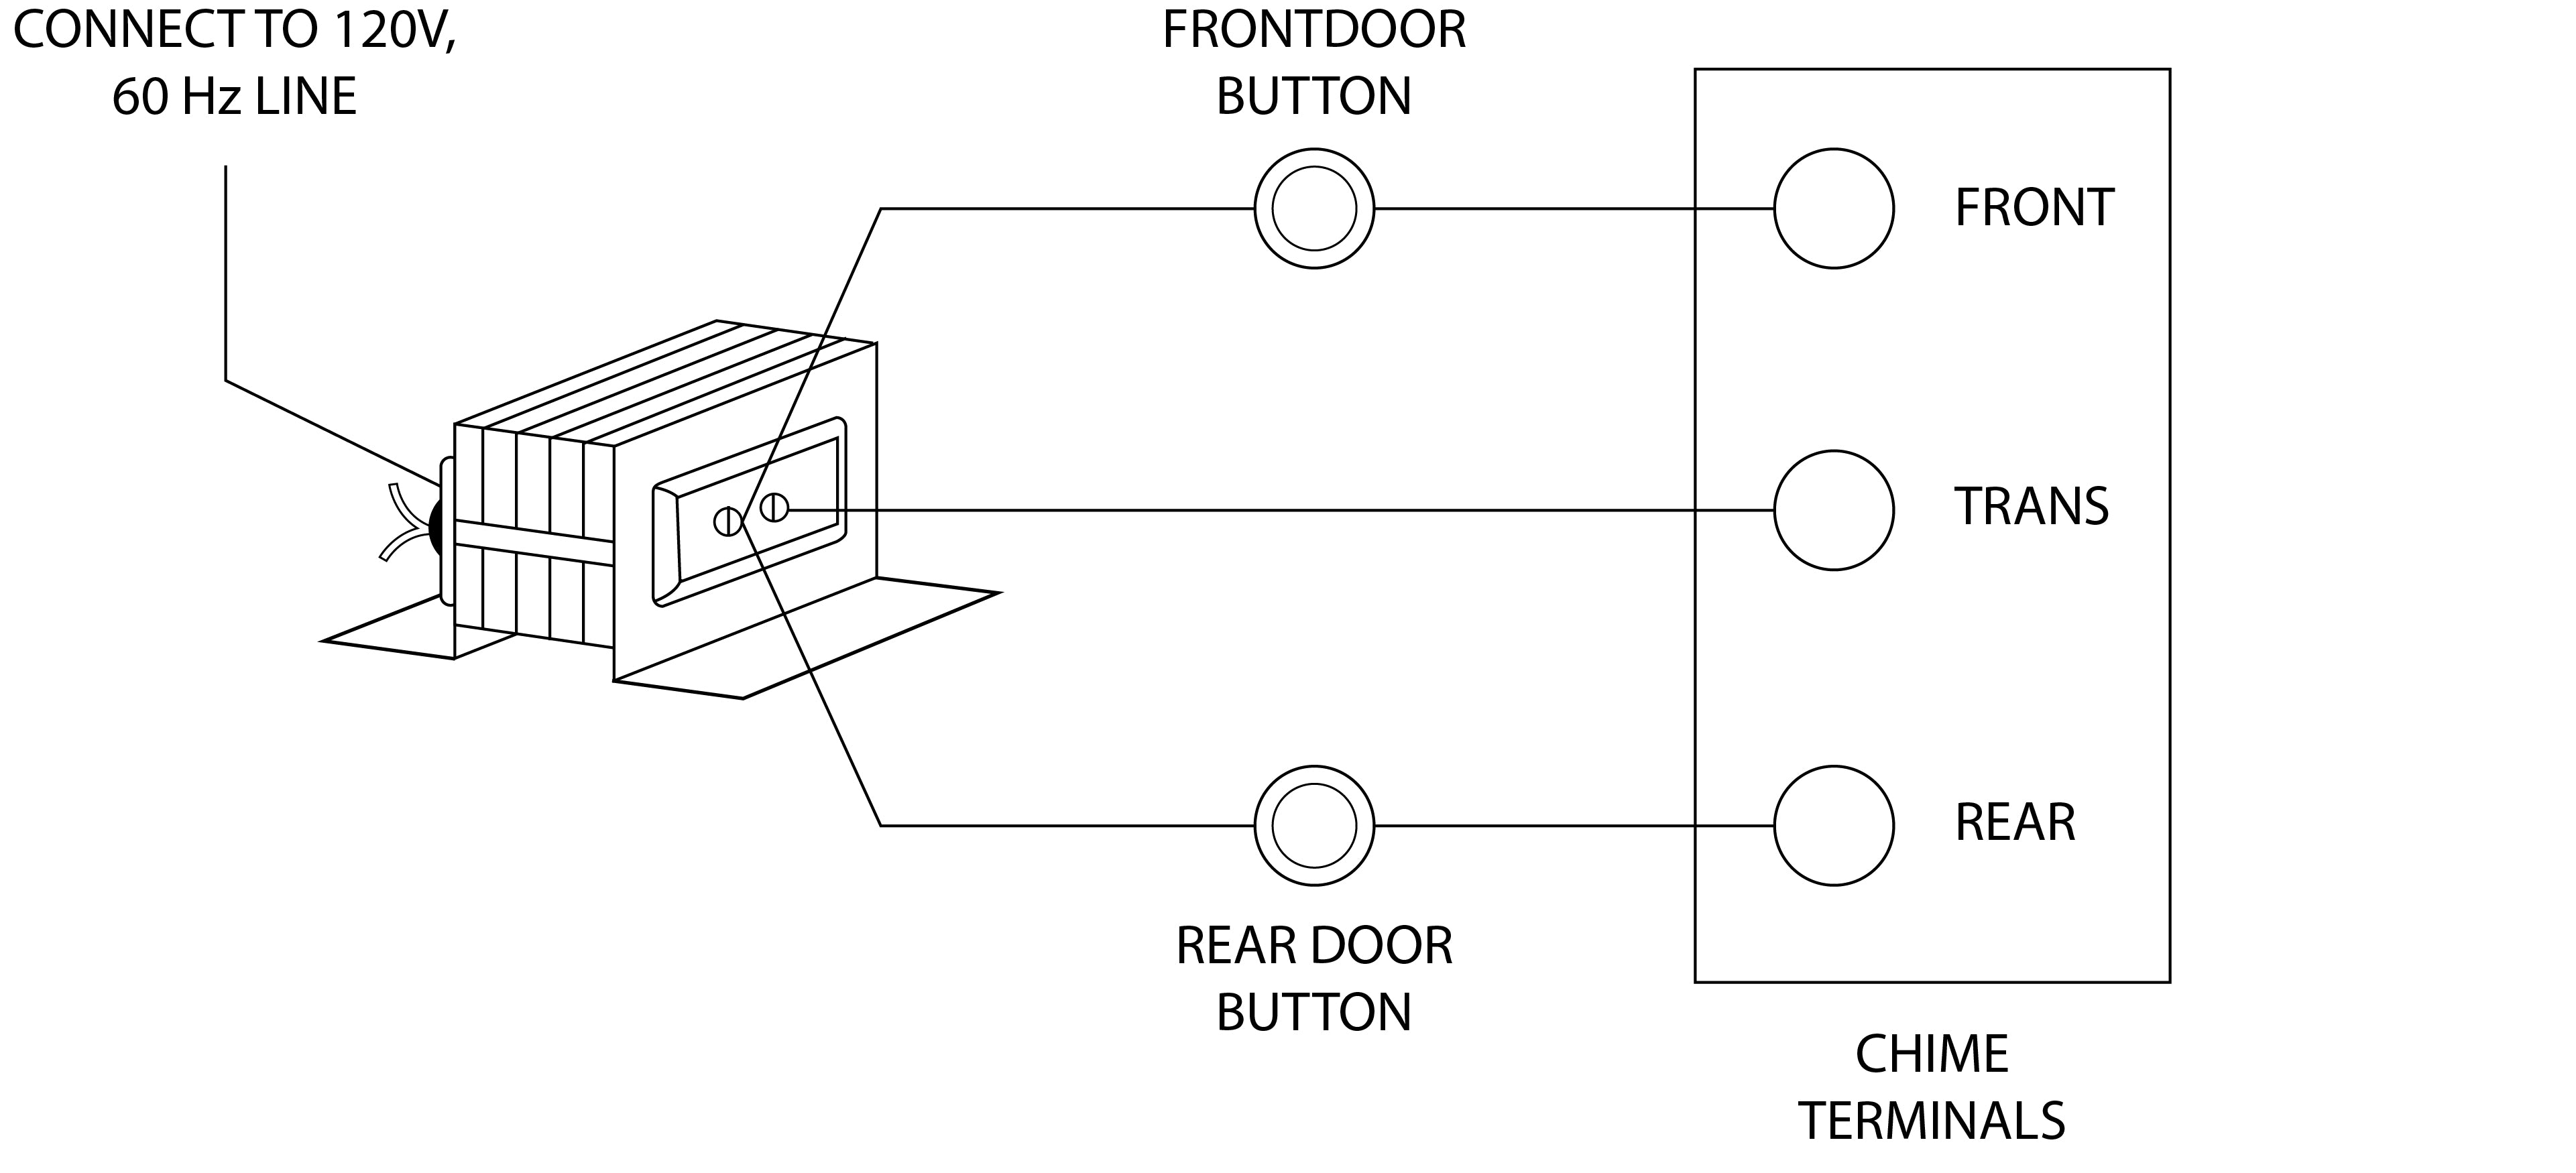 Wiring Diagram For Byron Doorbell : Byron doorbell transformer wiring diagram for a